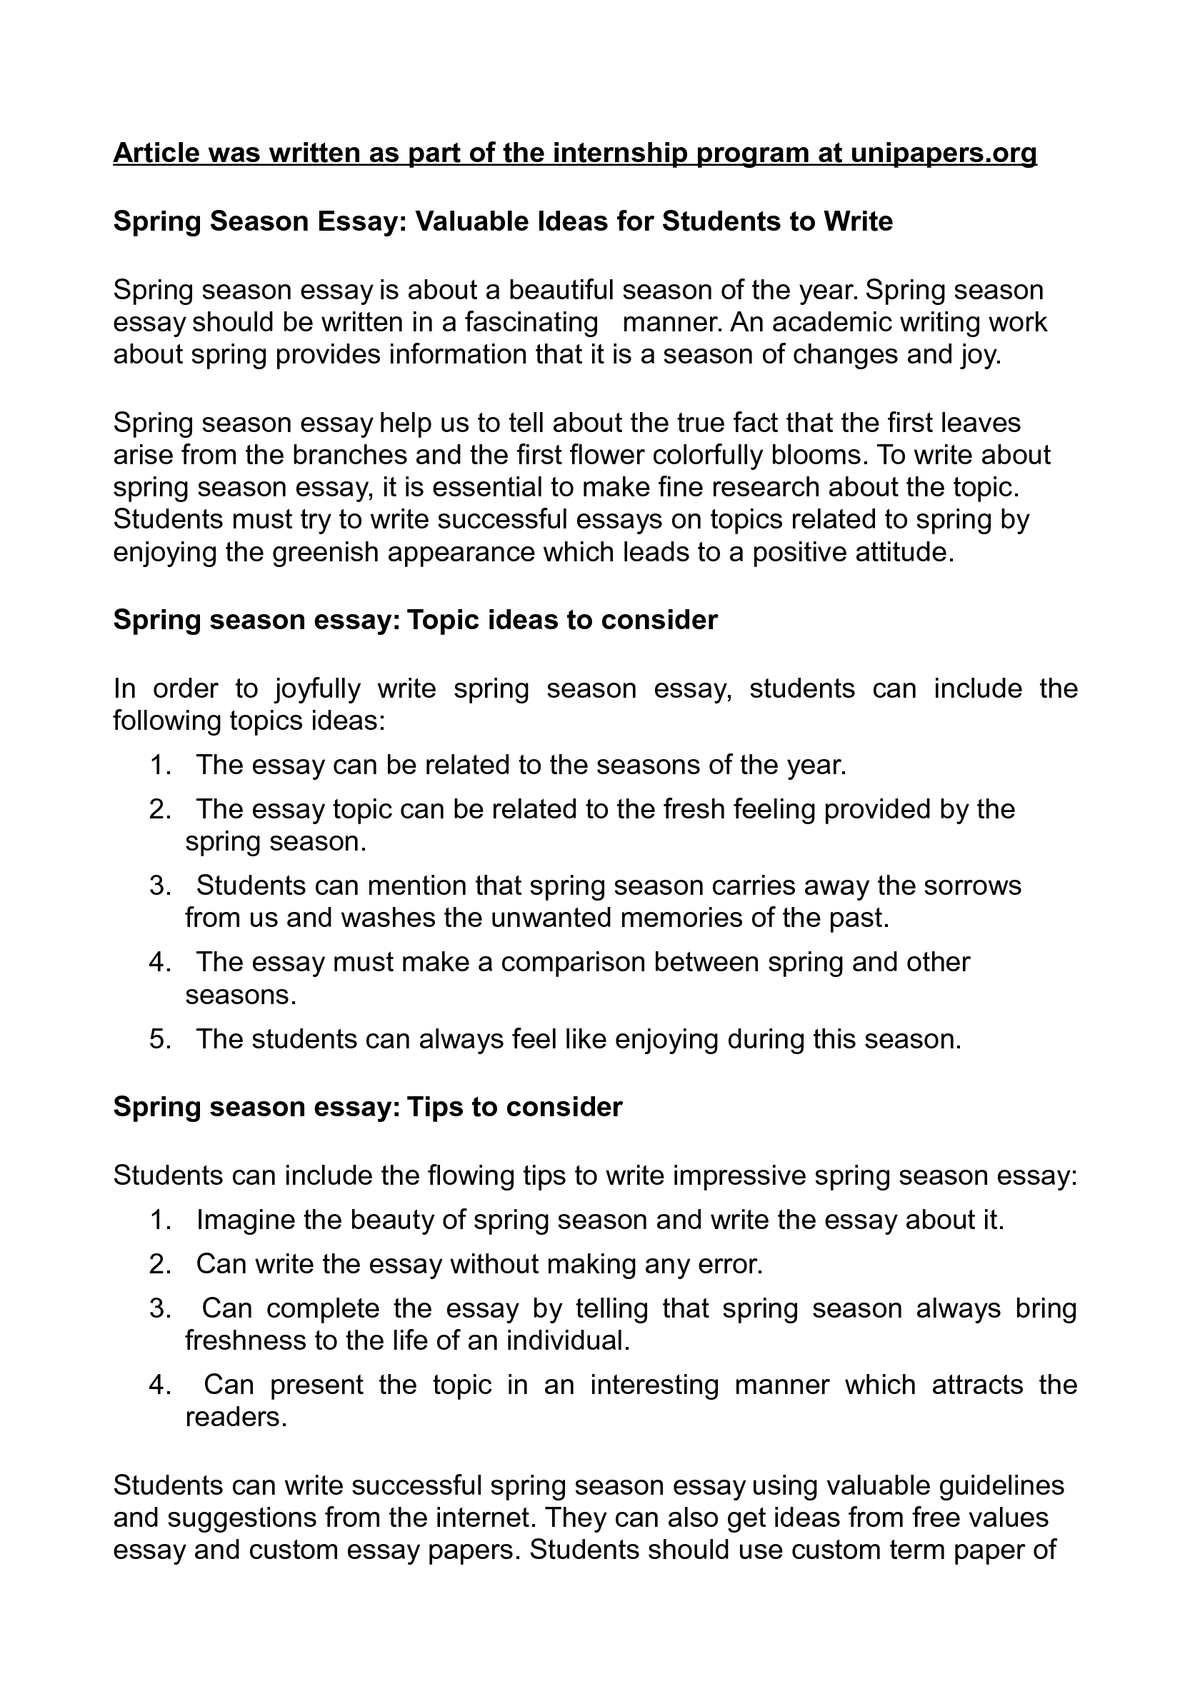 calaméo spring season essay valuable ideas for students to write